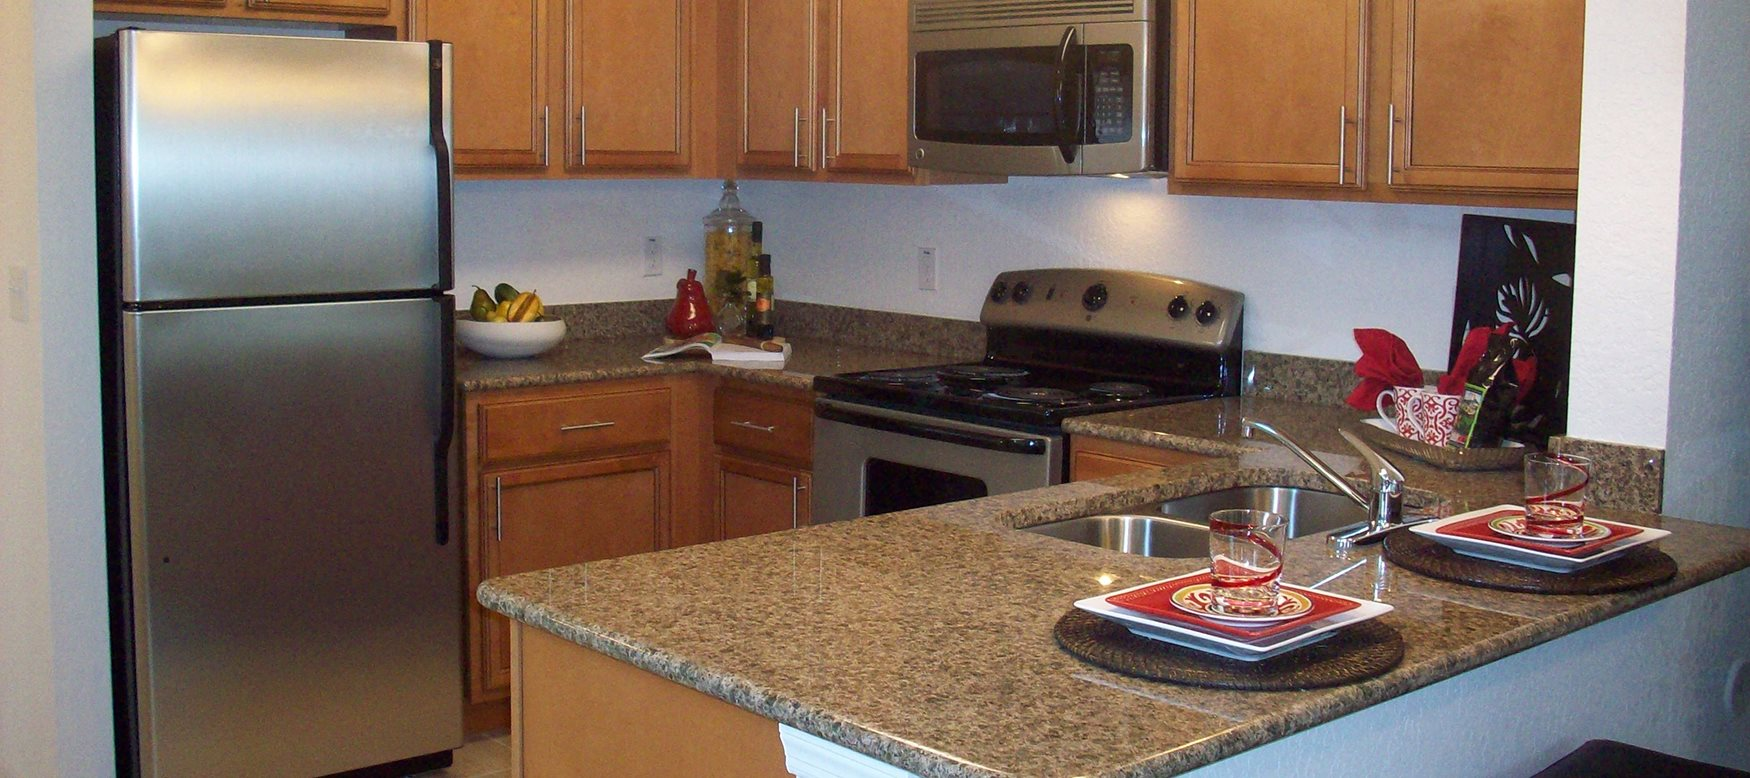 Boca Palms Apartments for rent in Kissimmee, FL. Make this community your new home or visit other ConcordRENTS communities at ConcordRENTS.com. Kitchen